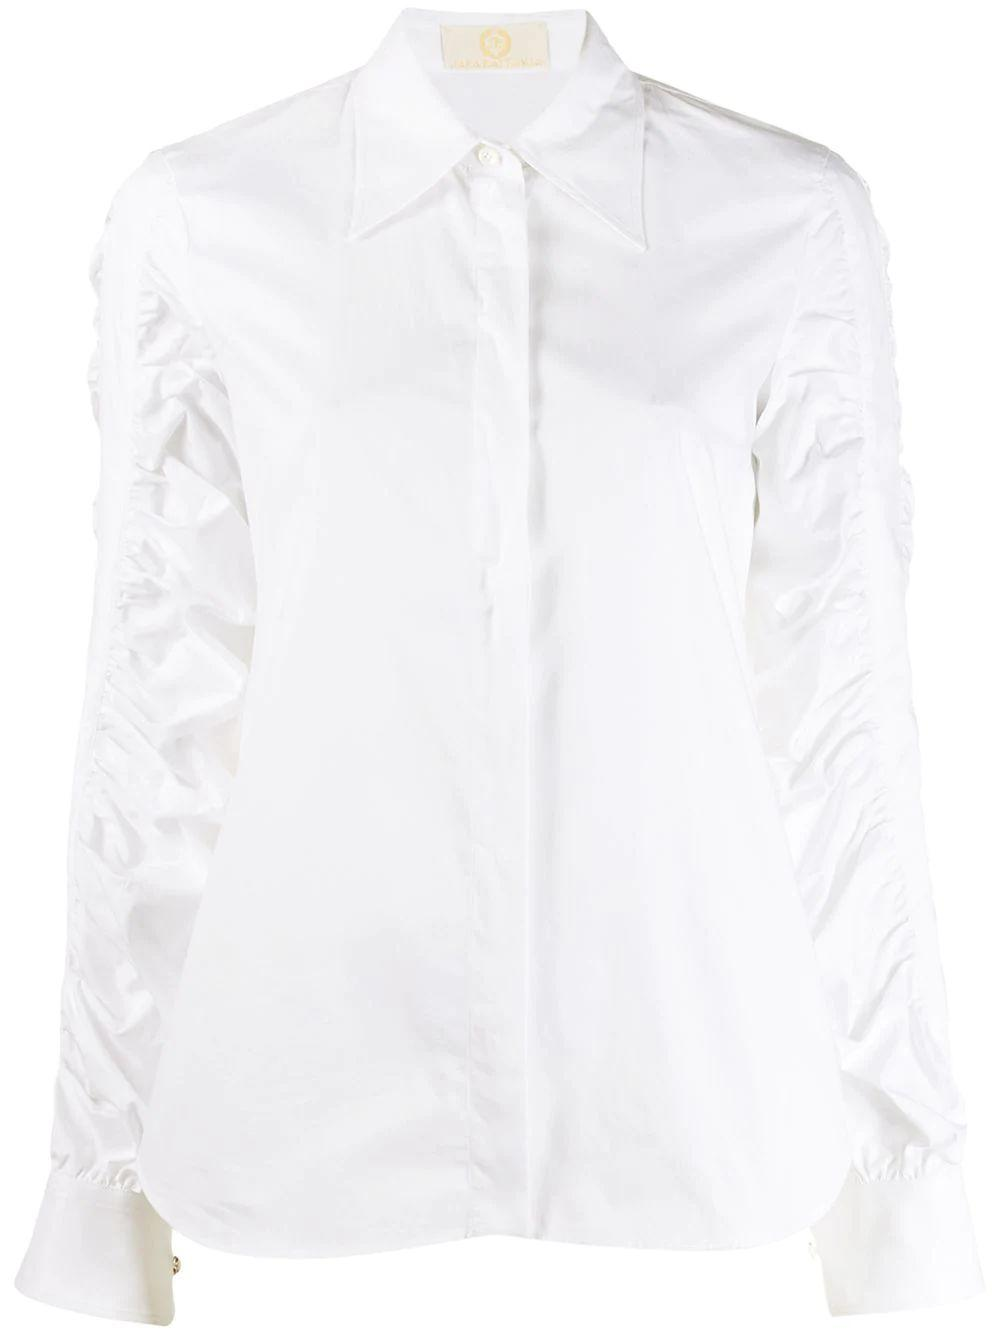 Long Sleeve Button Up Shirt With Ruched Sleeves Item # SB1014307W0